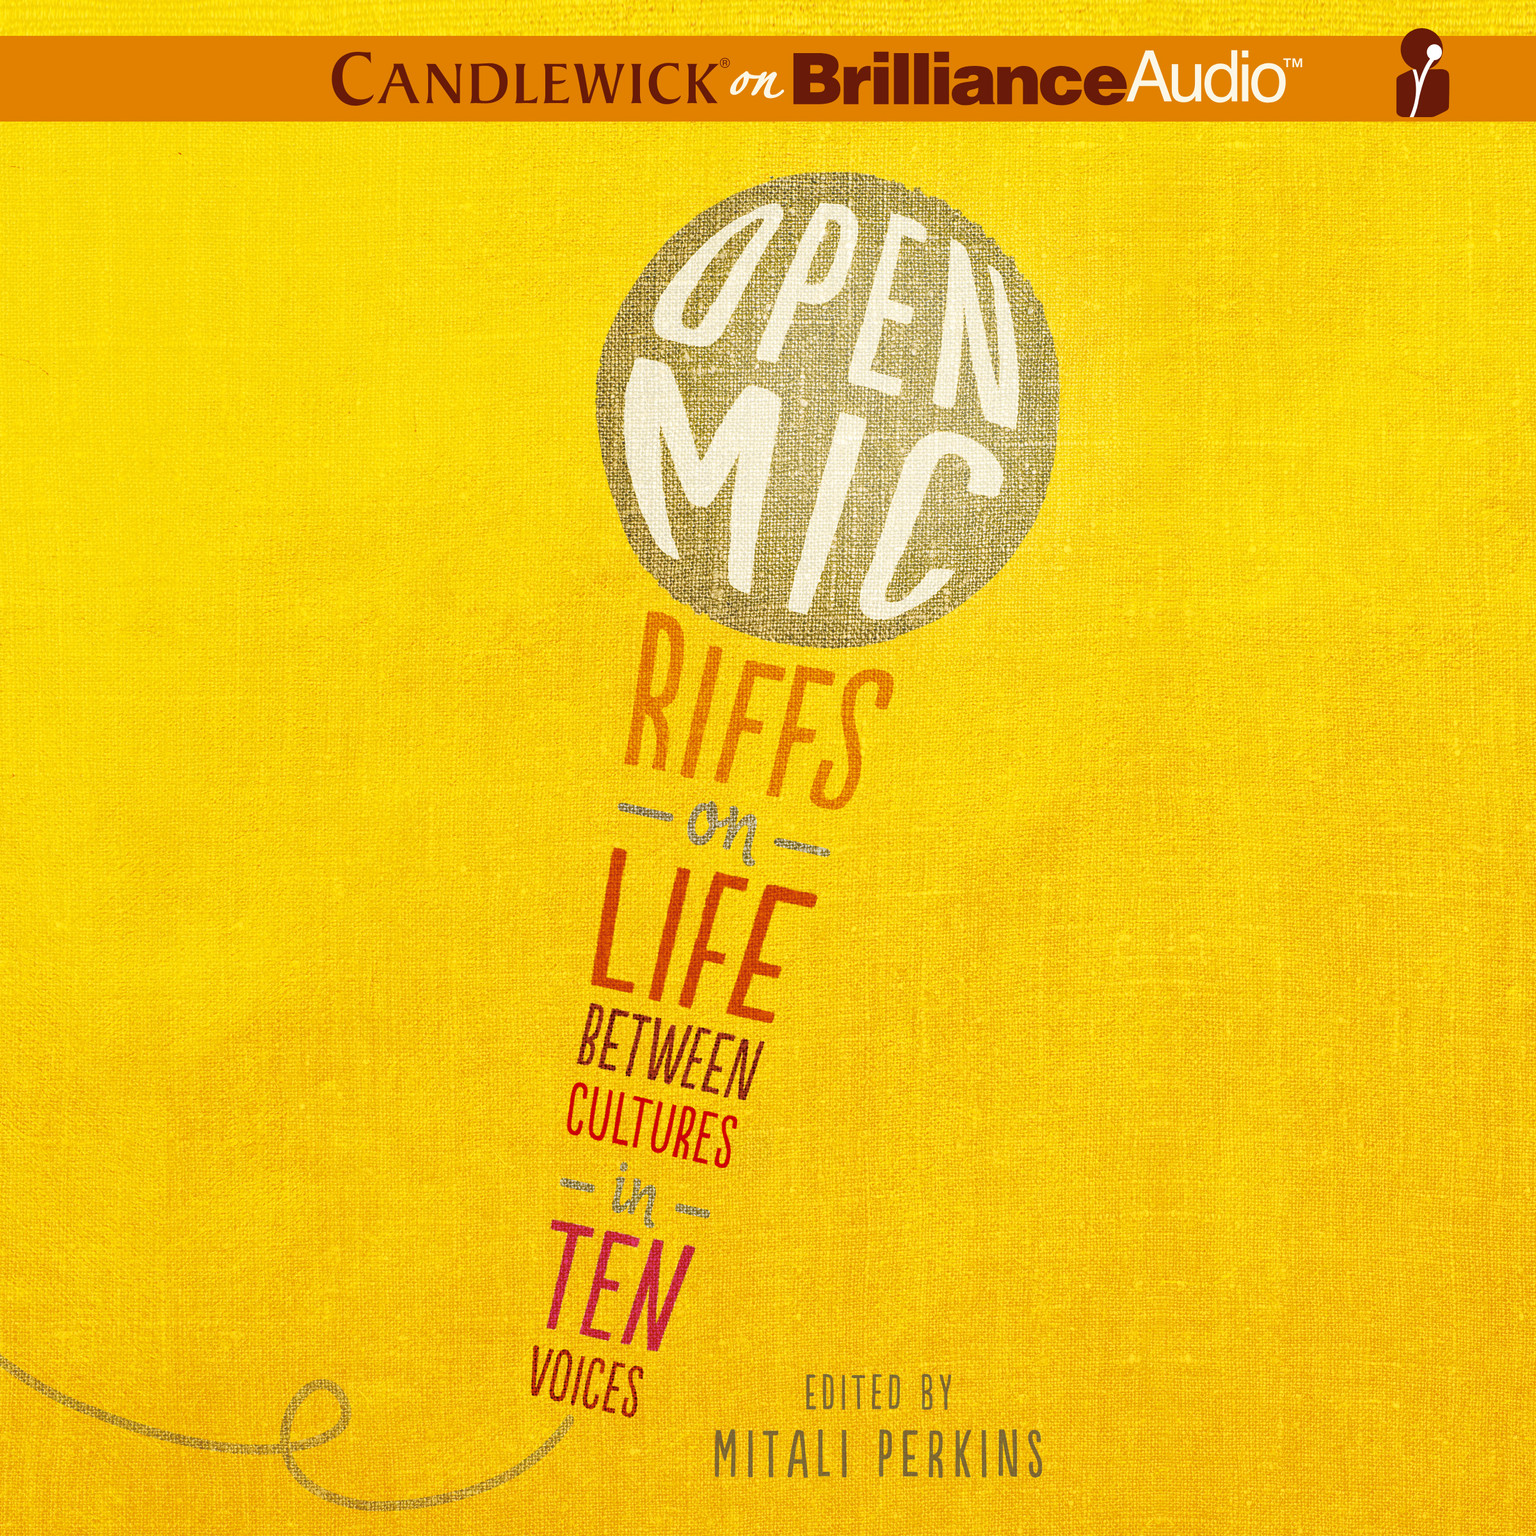 Printable Open Mic: Riffs on Life Between Cultures in Ten Voices Audiobook Cover Art